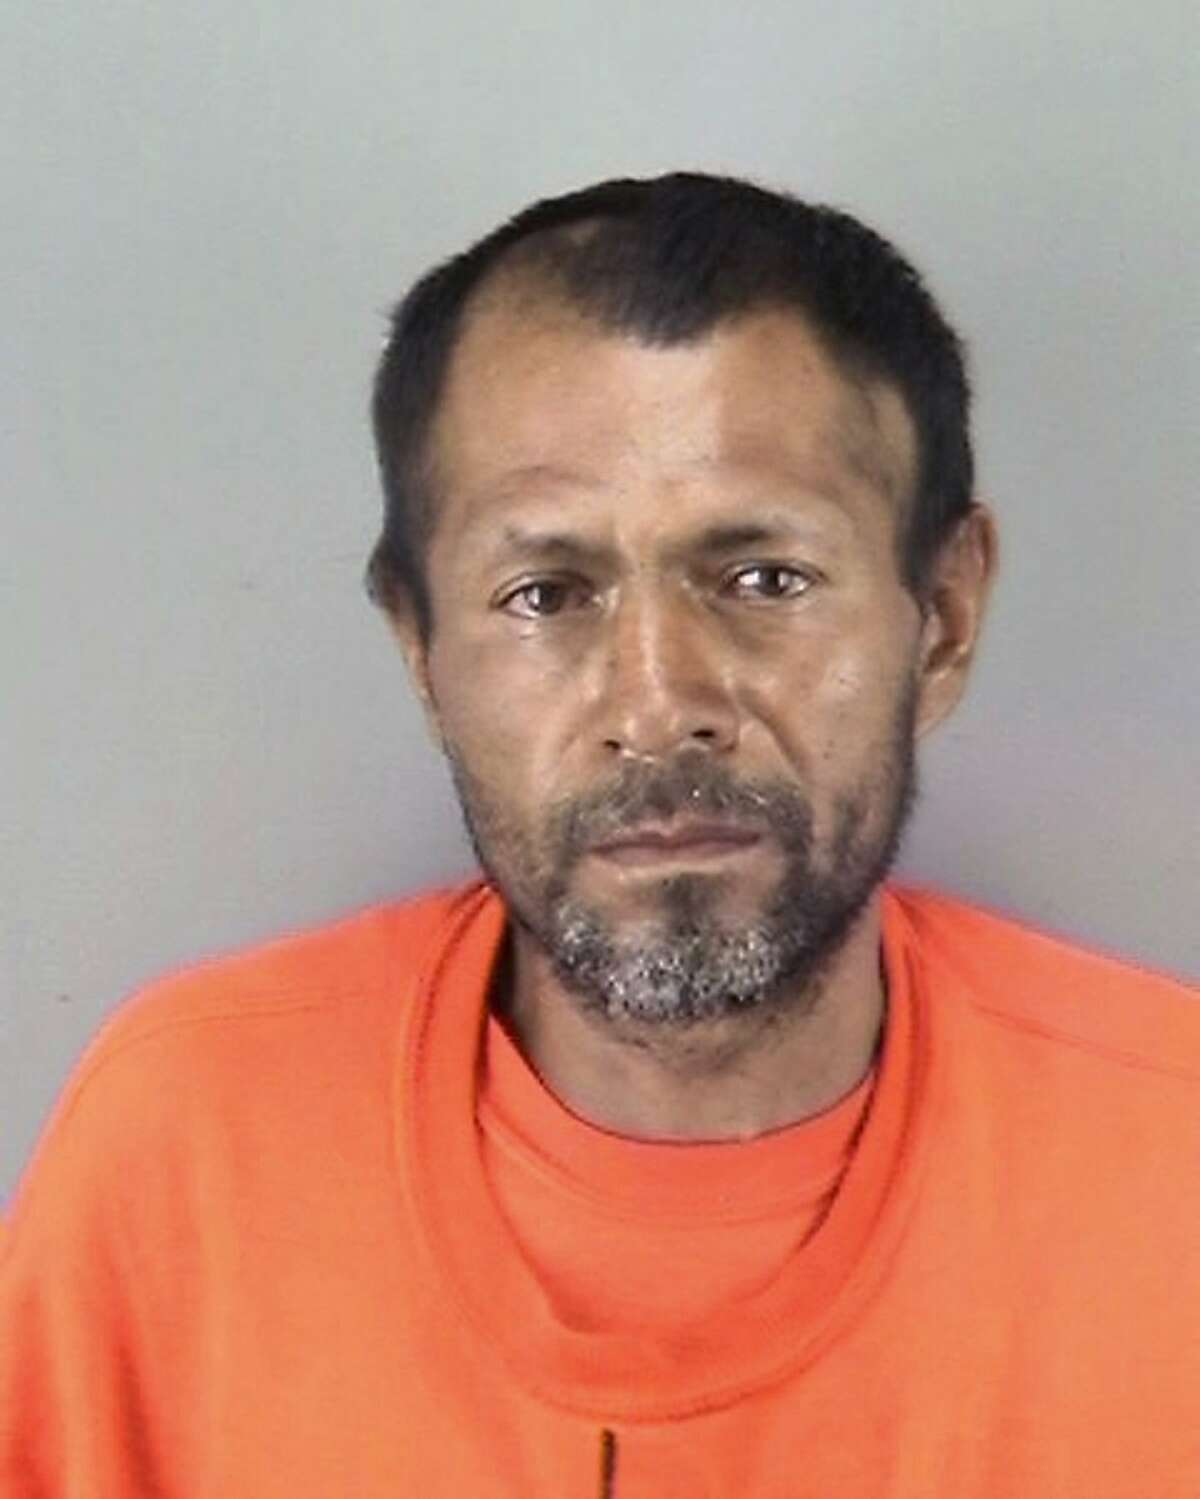 FILE - This undated file booking photo provided by the San Francisco Police Department shows Jose Ines Garcia Zarate. San Francisco jurors heard the muddled confession of the Mexican national on trial for the fatal shooting of Kate Steinle, whose death touched off a fierce debate over immigration. On Wednesday, Nov. 1, 2017, prosecutors played a portion of the interrogation of Jose Ines Garcia Zarate recorded several hours after Steinle was shot on July 1, 2015. (San Francisco Police Department via AP, File)